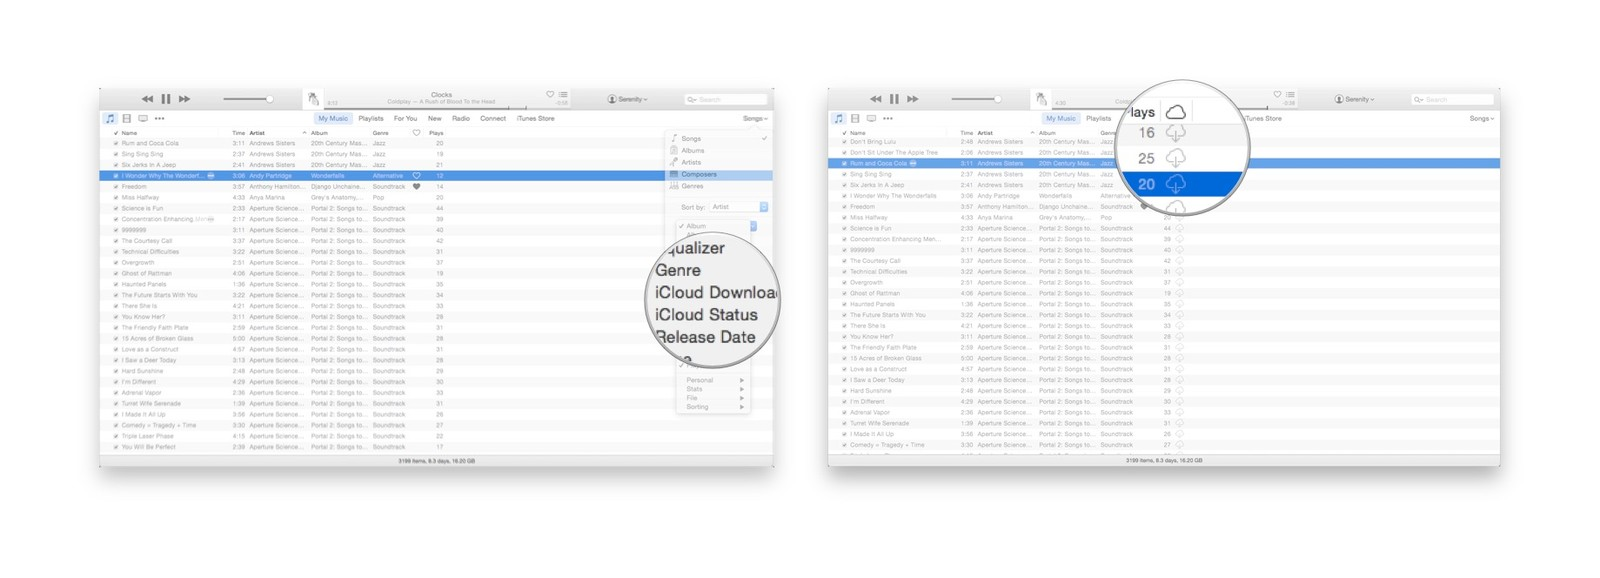 How to add a song from Apple Music to iCloud Music Library